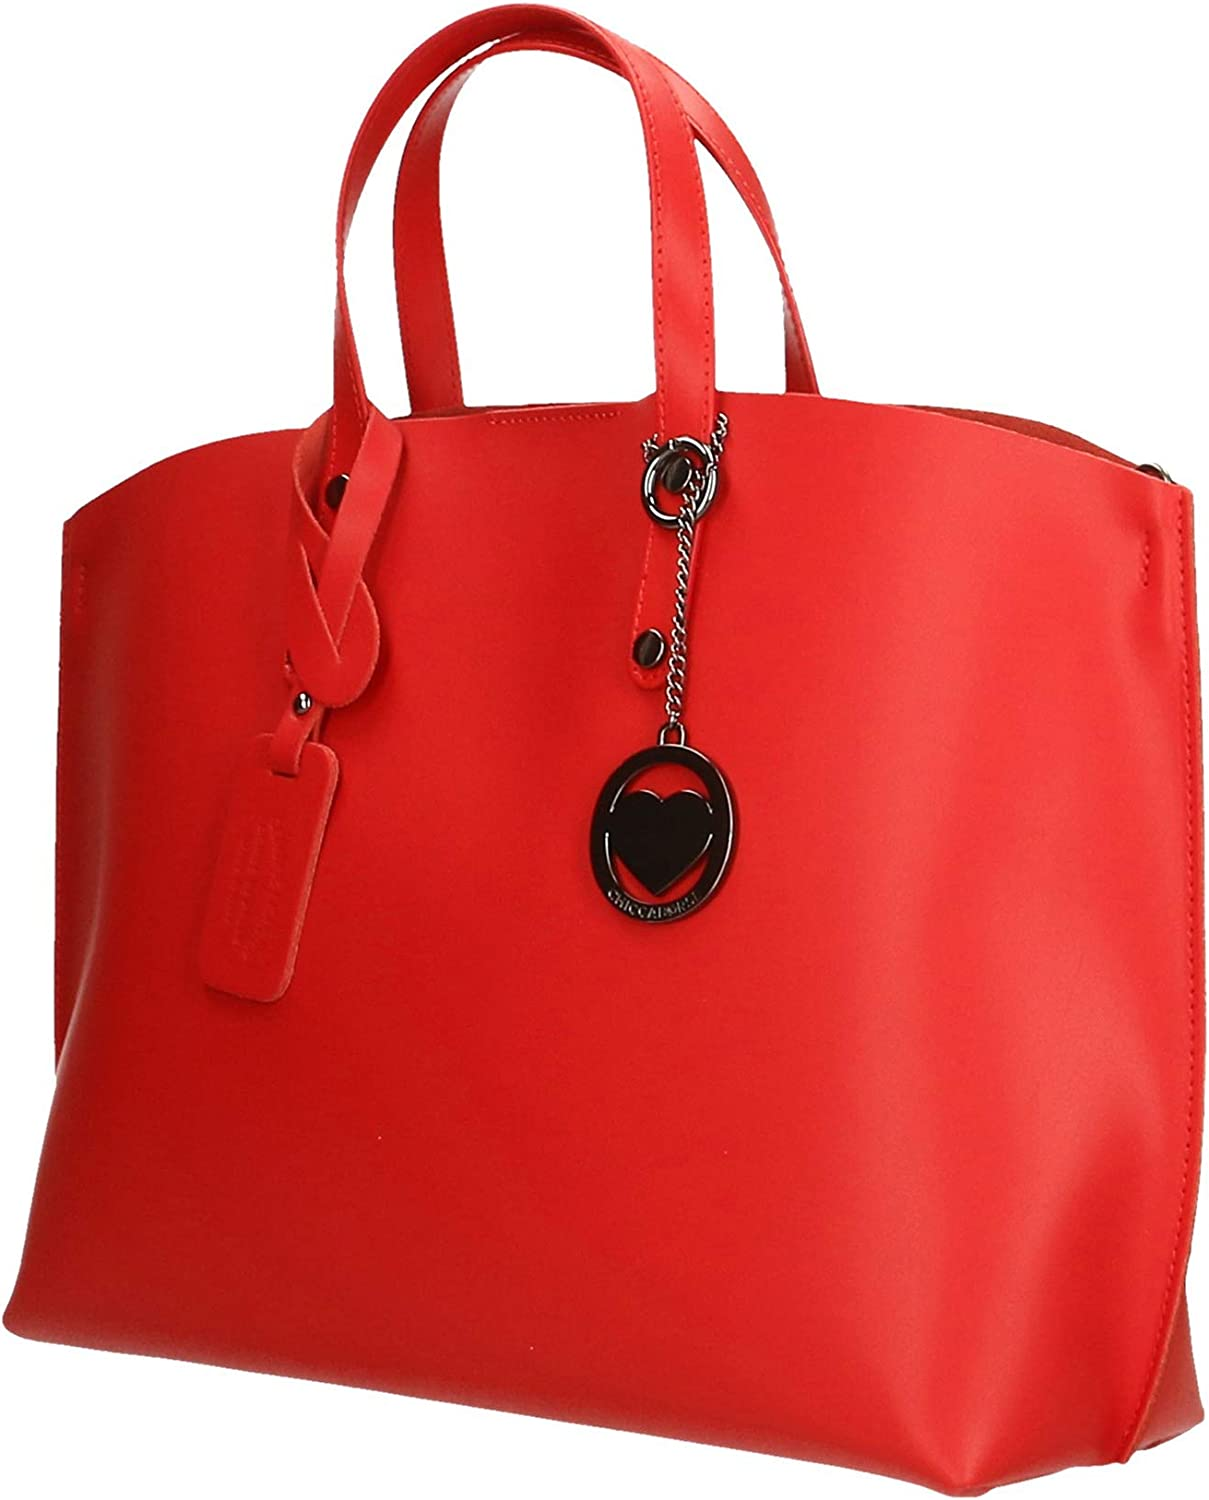 Chicca Borse Bag Borsa a Mano in Pelle Made in Italy 47x30x14 cm Rosso